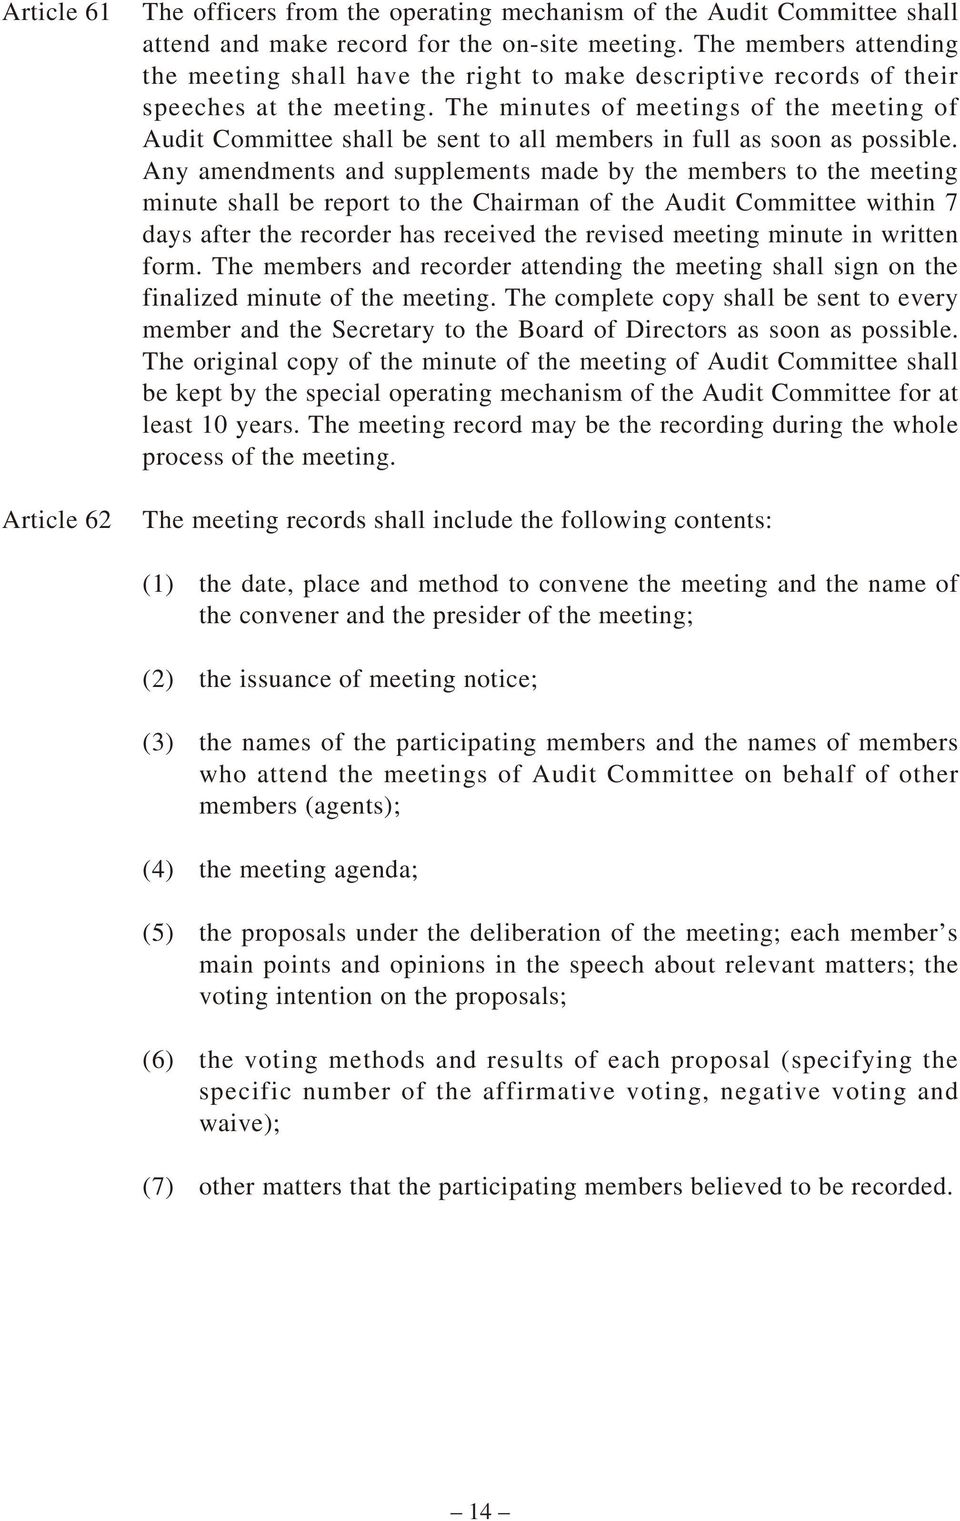 The minutes of meetings of the meeting of Audit Committee shall be sent to all members in full as soon as possible.